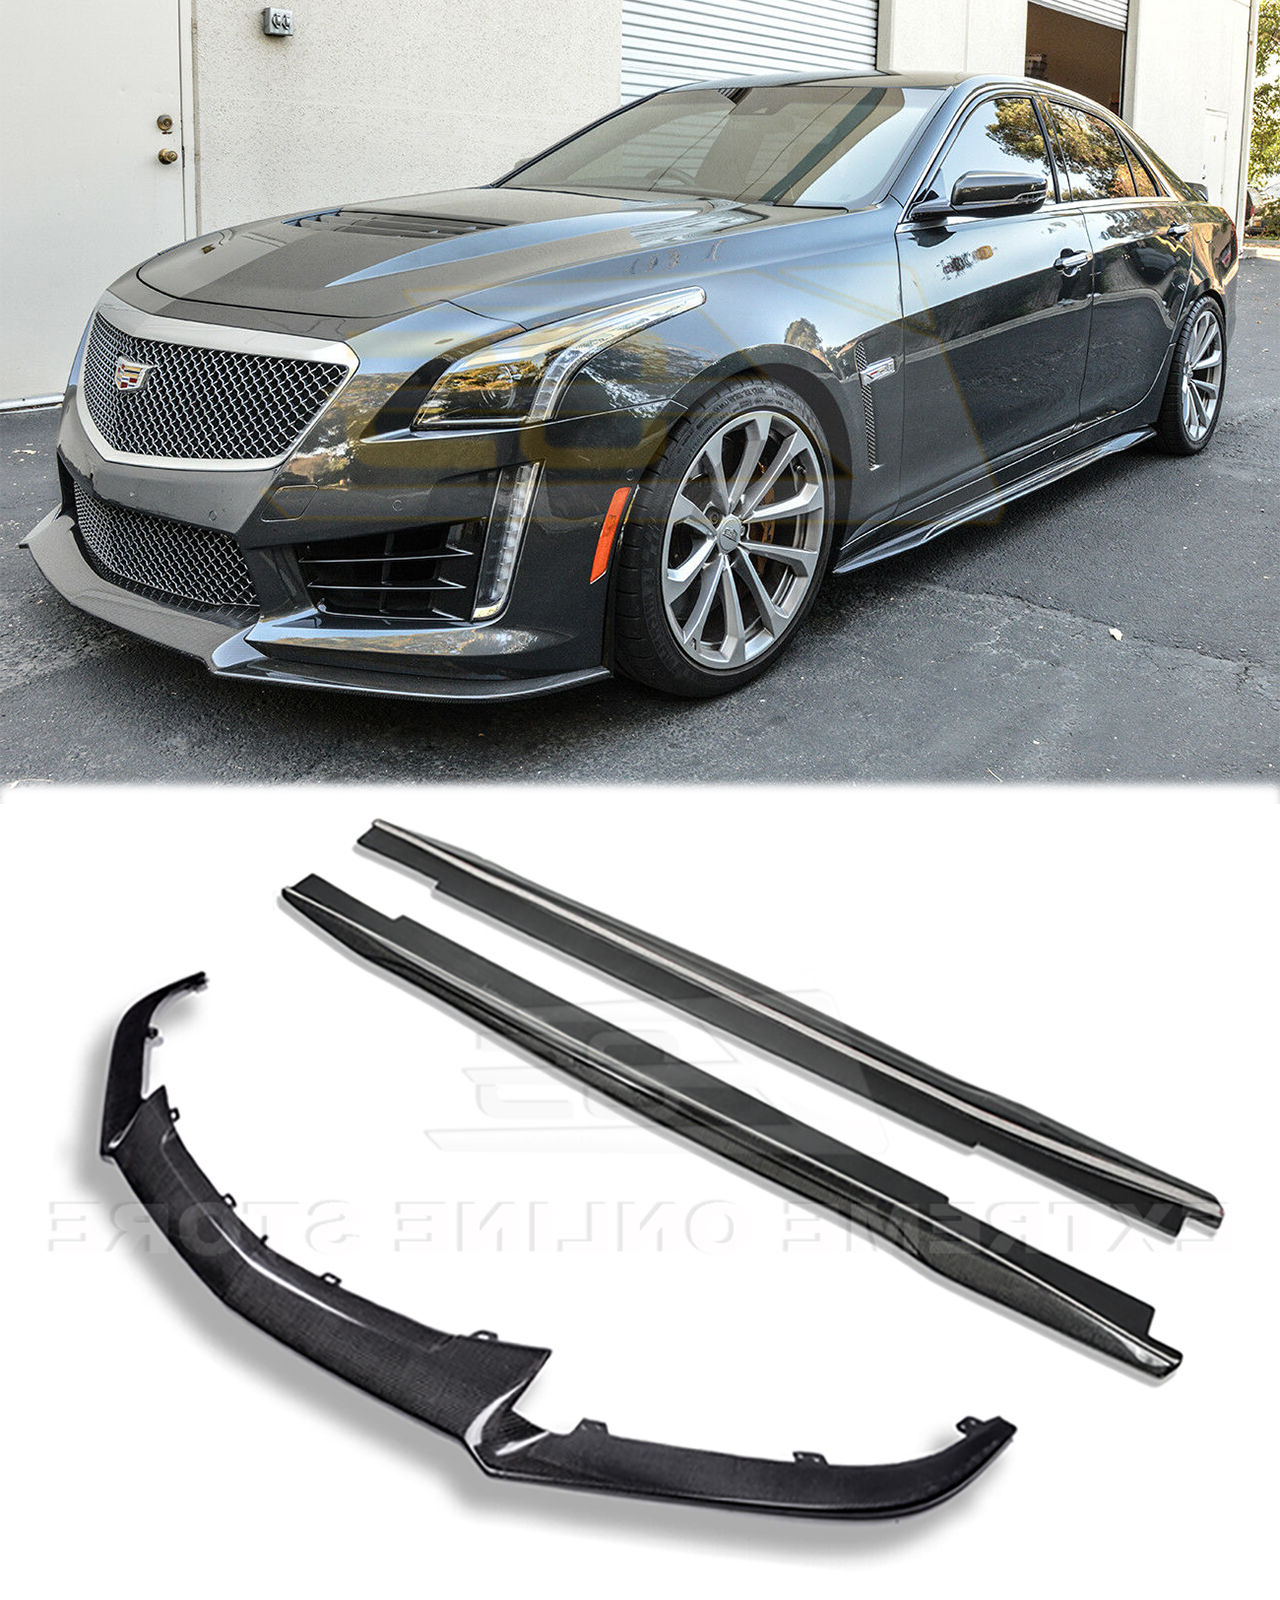 2016 Cadillac Cts V Ditches Manual Gearbox Multiple: CARBON FIBER Front Lip Splitter & Side Skirts Panel For 16